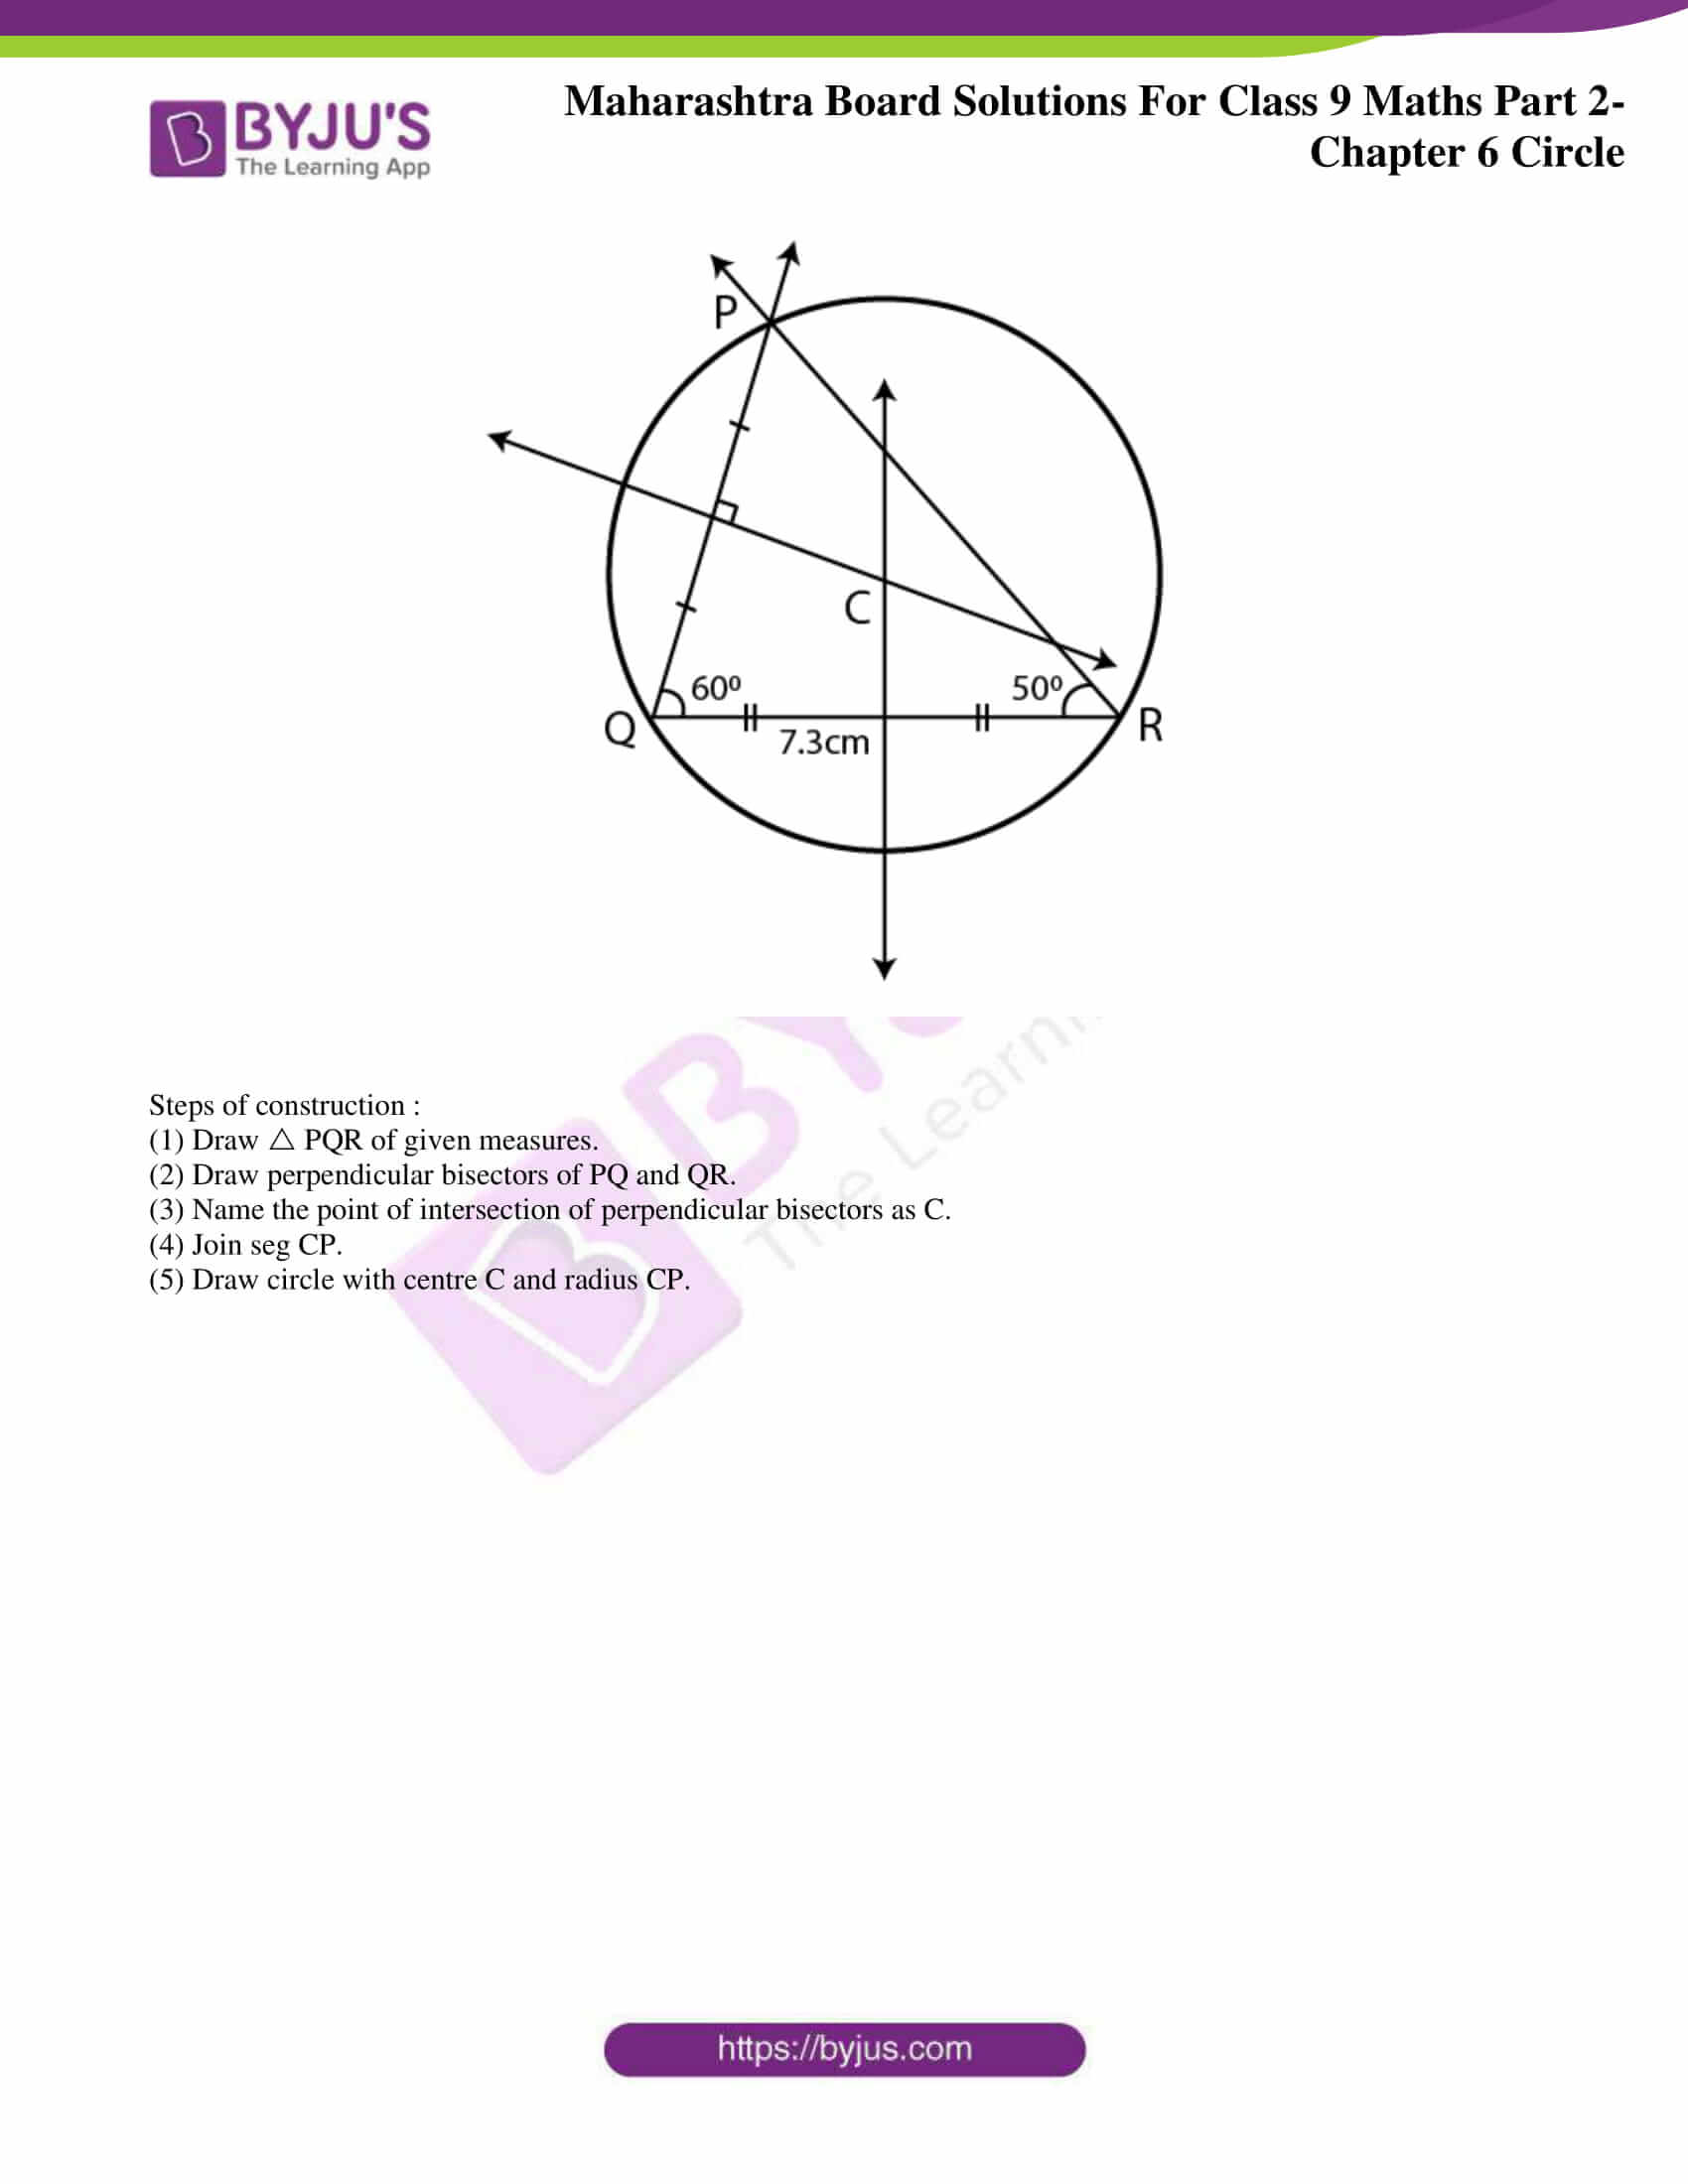 msbshse solutions for class 9 maths part 2 chapter 6 12